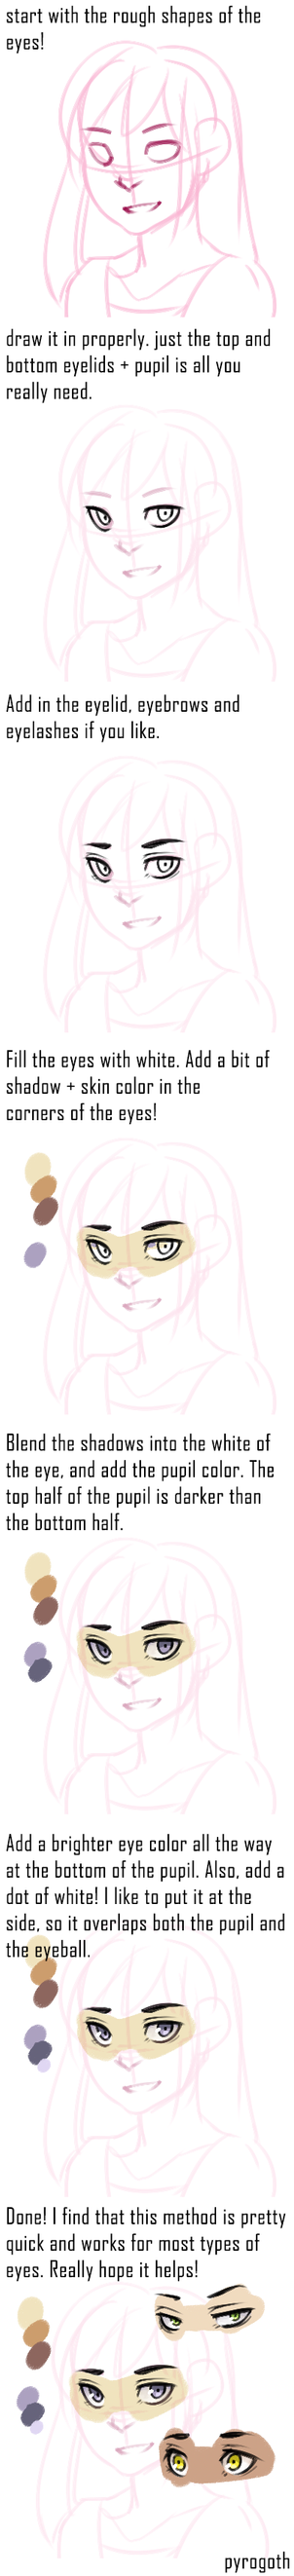 Tutorial: Super quick eye colors by pyrogoth